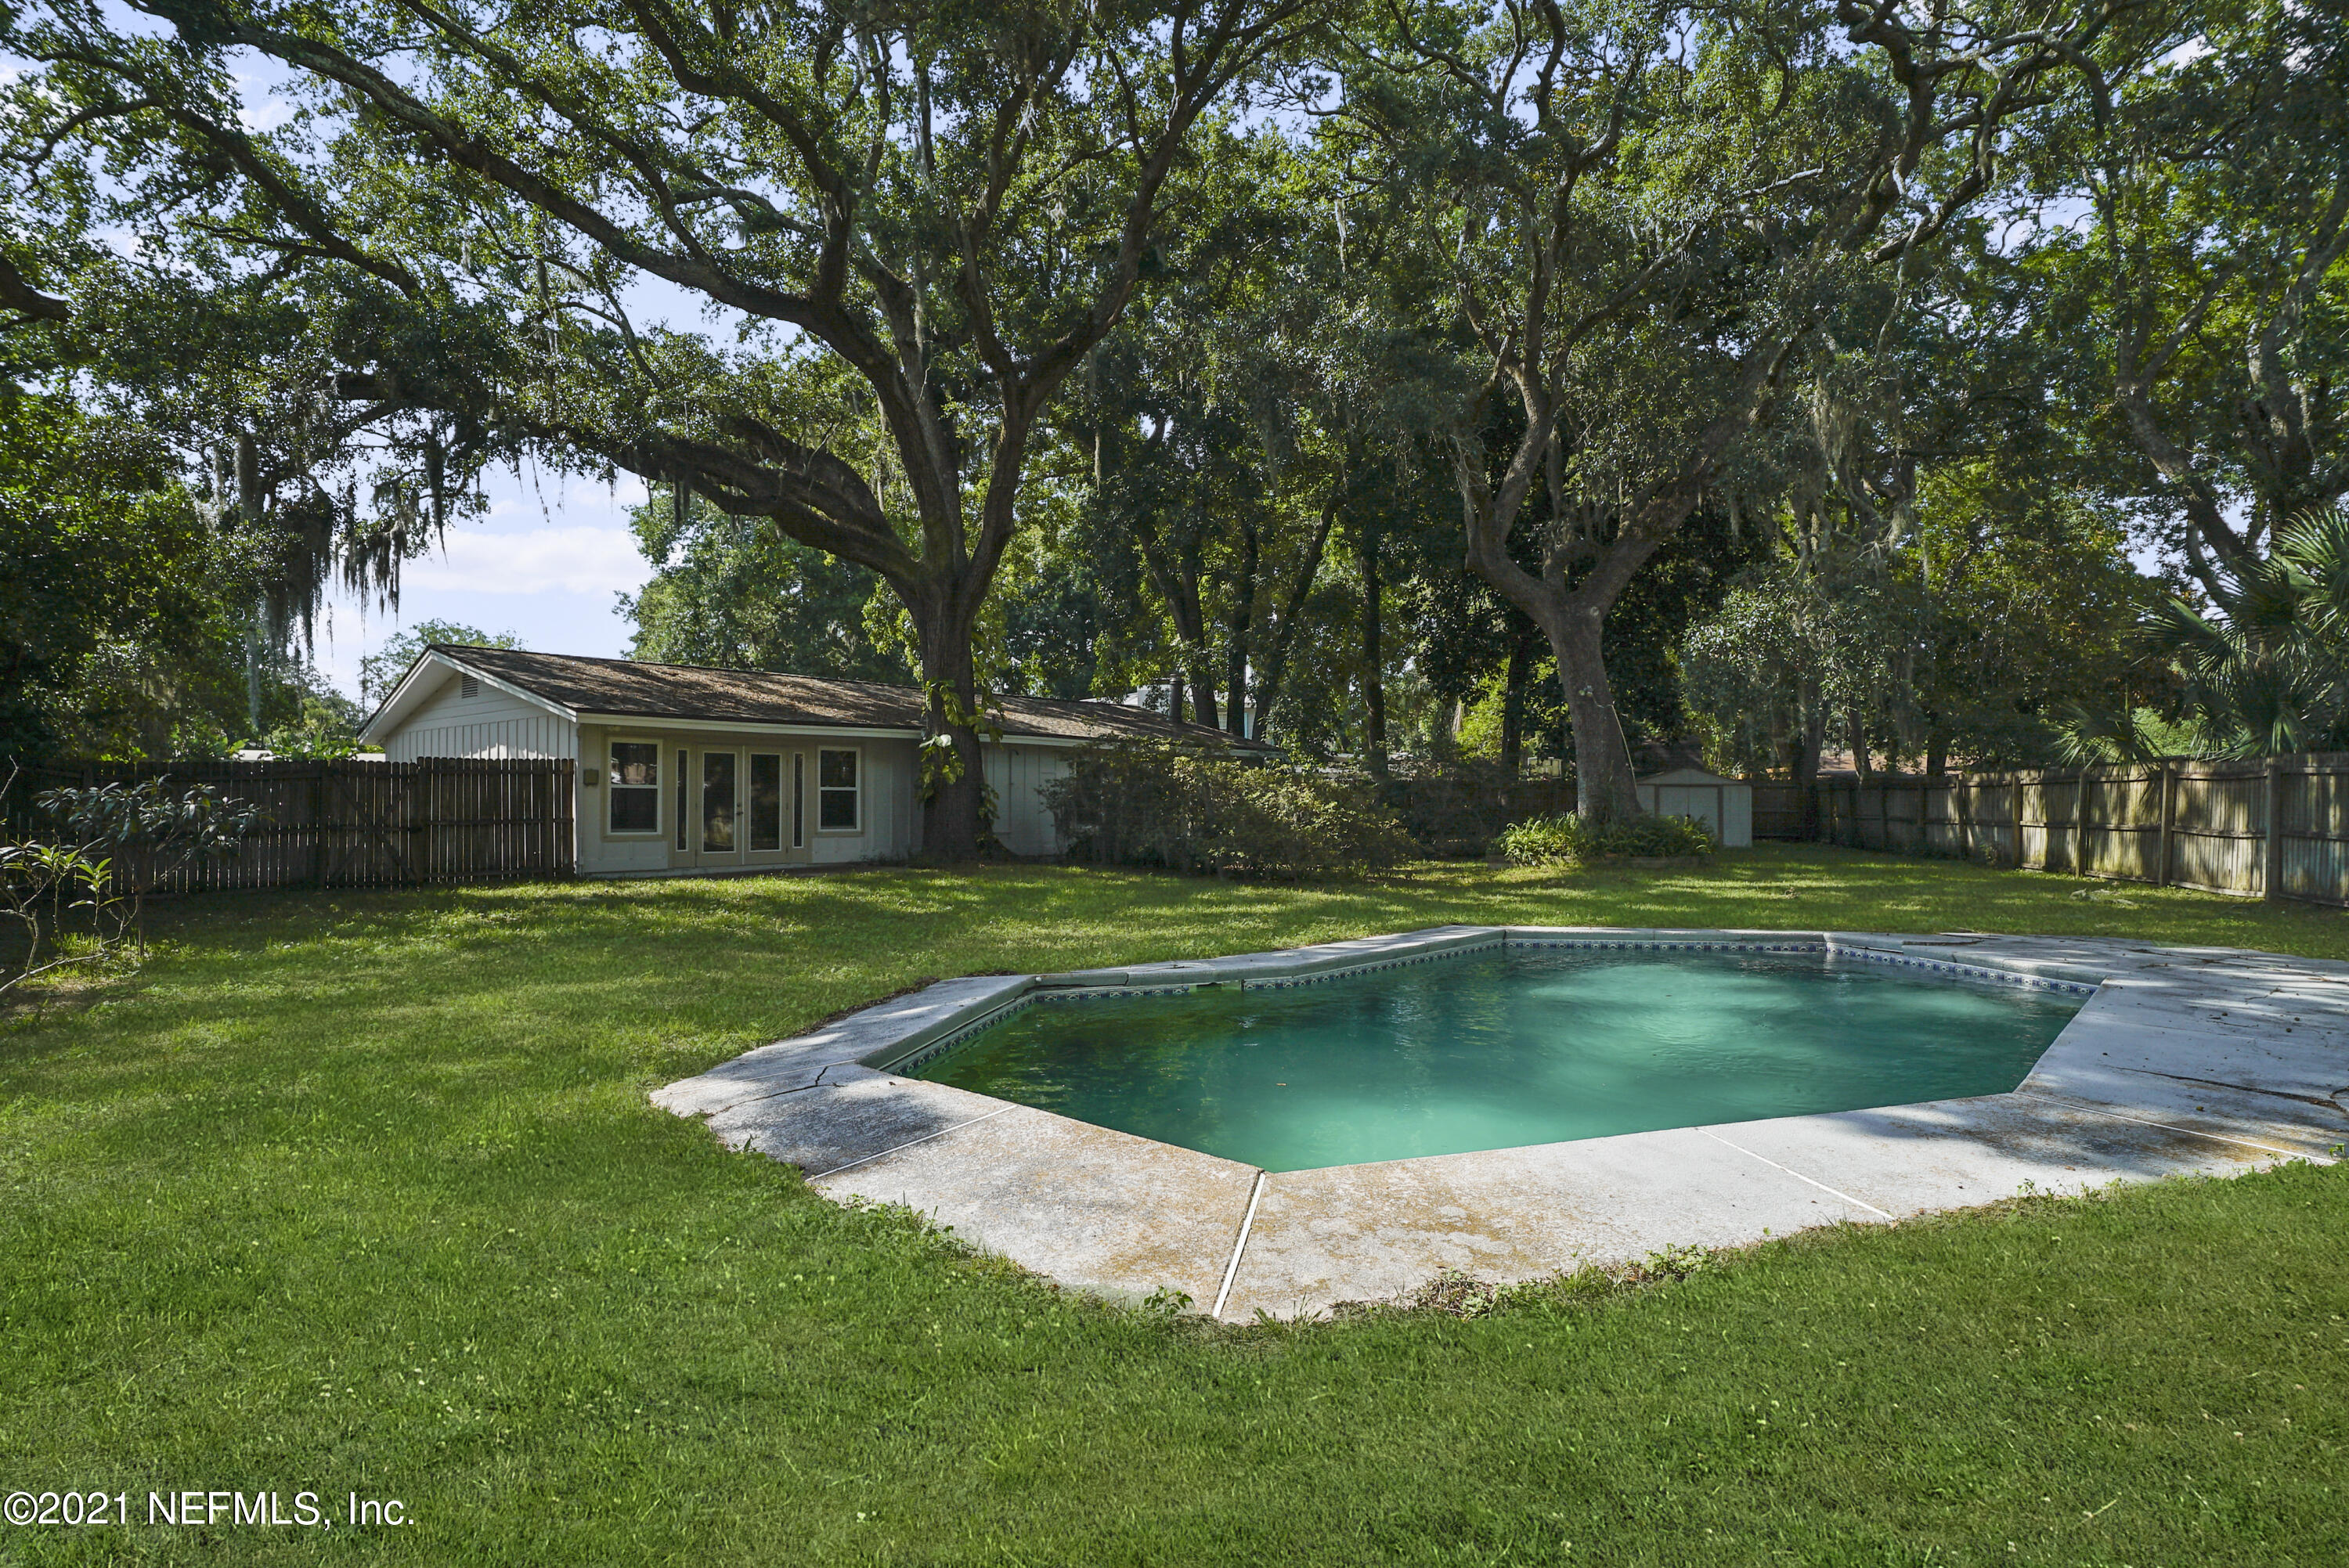 Are you looking for a BEACH HOME with a POOL? Don't miss out on an opportunity to make this beaches original your private enclave. Located in one of the largest 'neighborhoods' of Jax Beach, you will enjoy the convenience of living a short bike ride to the beach AND ALSO having a true neighborhood feel. NO HOA means you can park your boat, RV, toys, etc. One of the largest lots available at the beach and plenty of room to expand. NEW ROOF has been installed in last 2 months. Exterior just repainted. 2 sheds located out back. Large circle drive. Floor plan can be altered to add an additional 4th bedroom. Plumbing redone. Artesian well for irrigation/heat pump. So many options that make this an attractive deal! After reno, home value almost $700K based on comp sales! OPEN HOUSE Sat 11-1pm